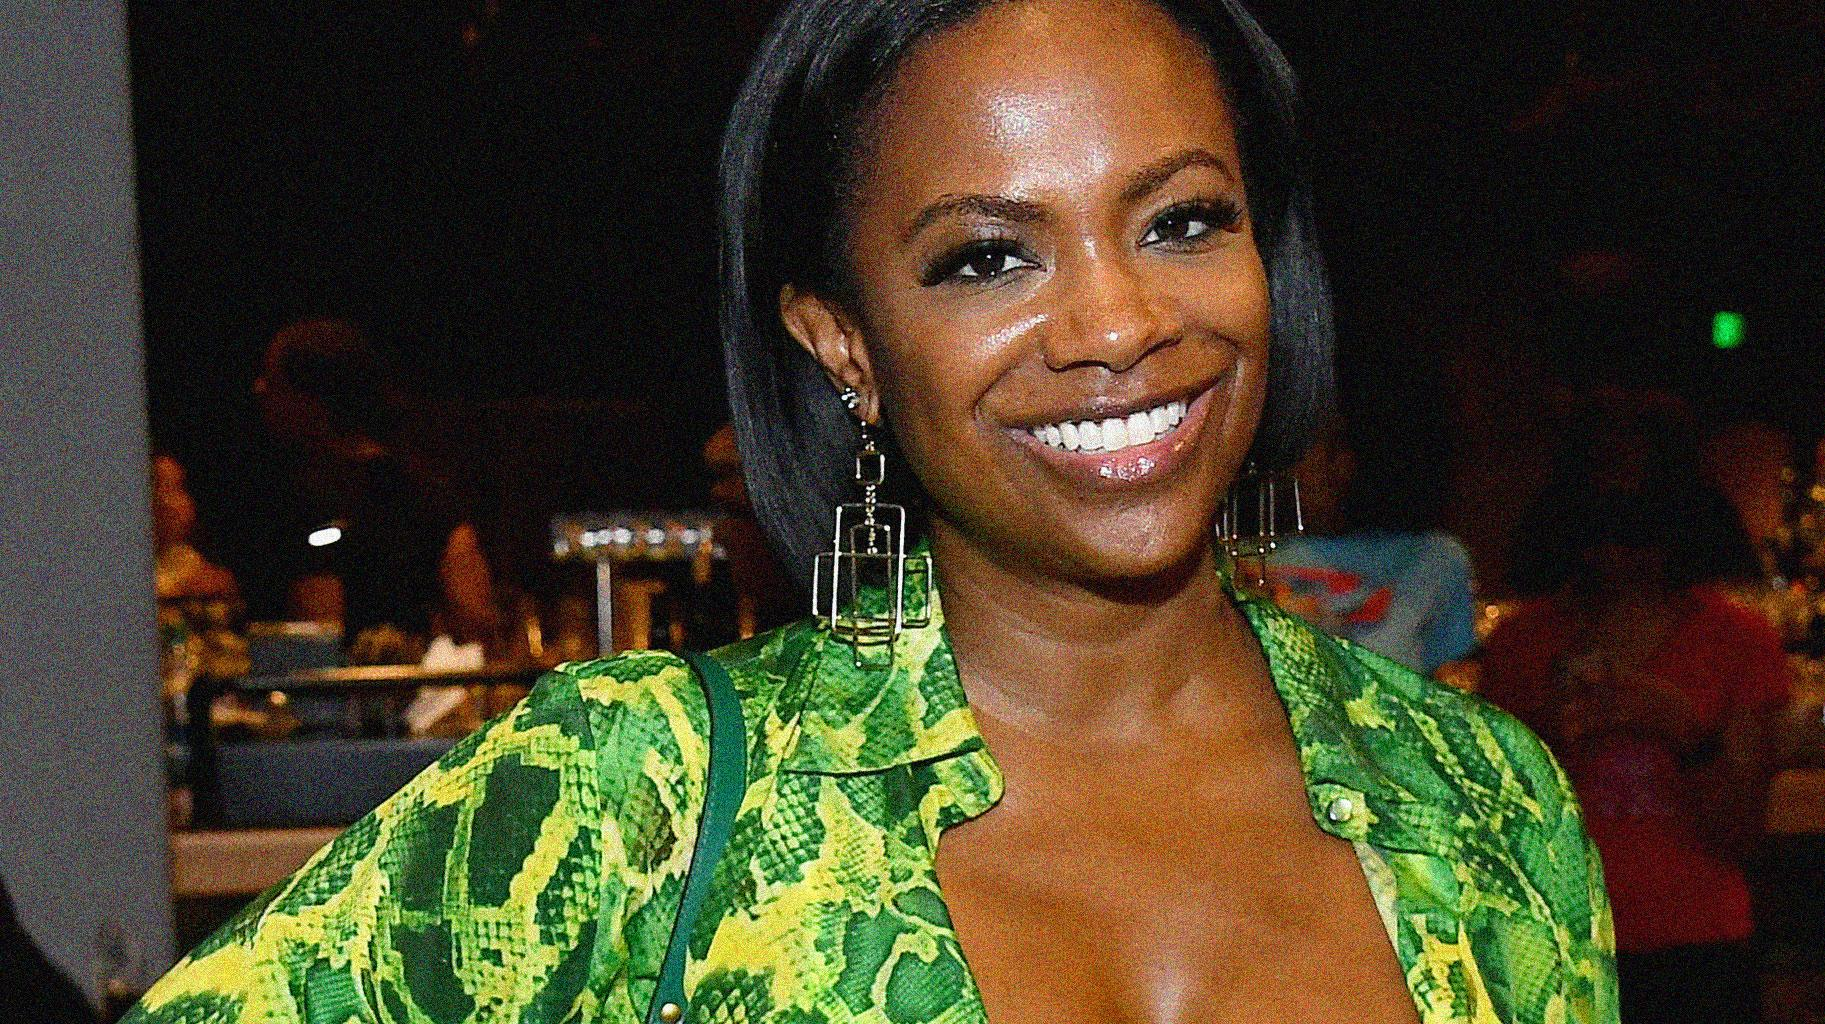 Kandi Burruss Gushes Over Lil Scrappy Who Was Featured In Her Dungeon Show - Check Out The Video